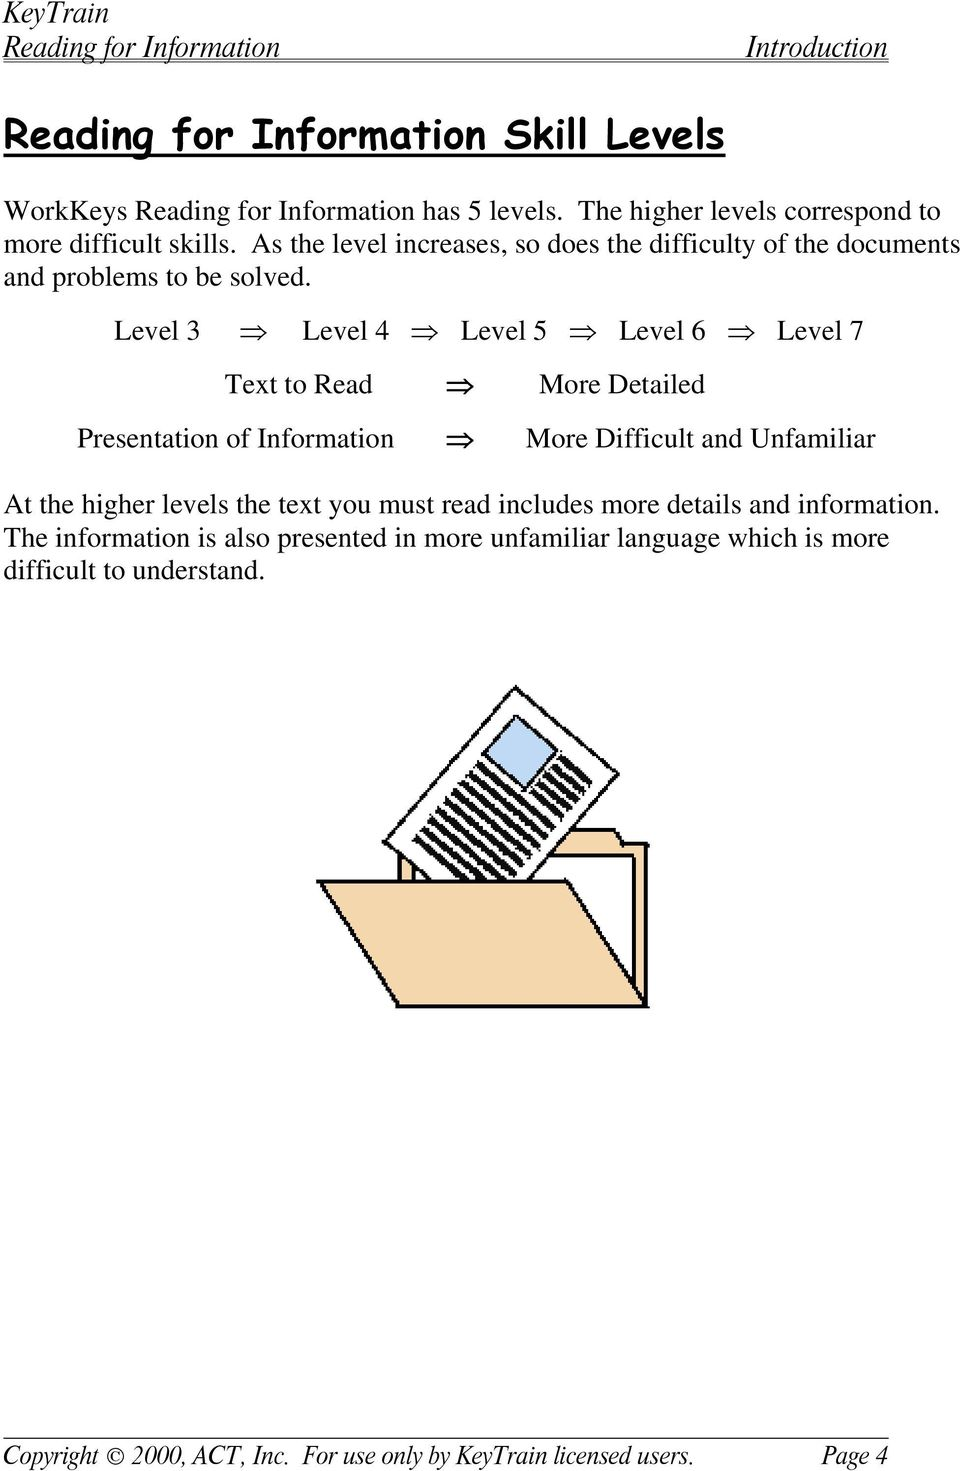 Level 3 Level 4 Level 5 Level 6 Level 7 Text to Read More Detailed Presentation of Information More Difficult and Unfamiliar At the higher